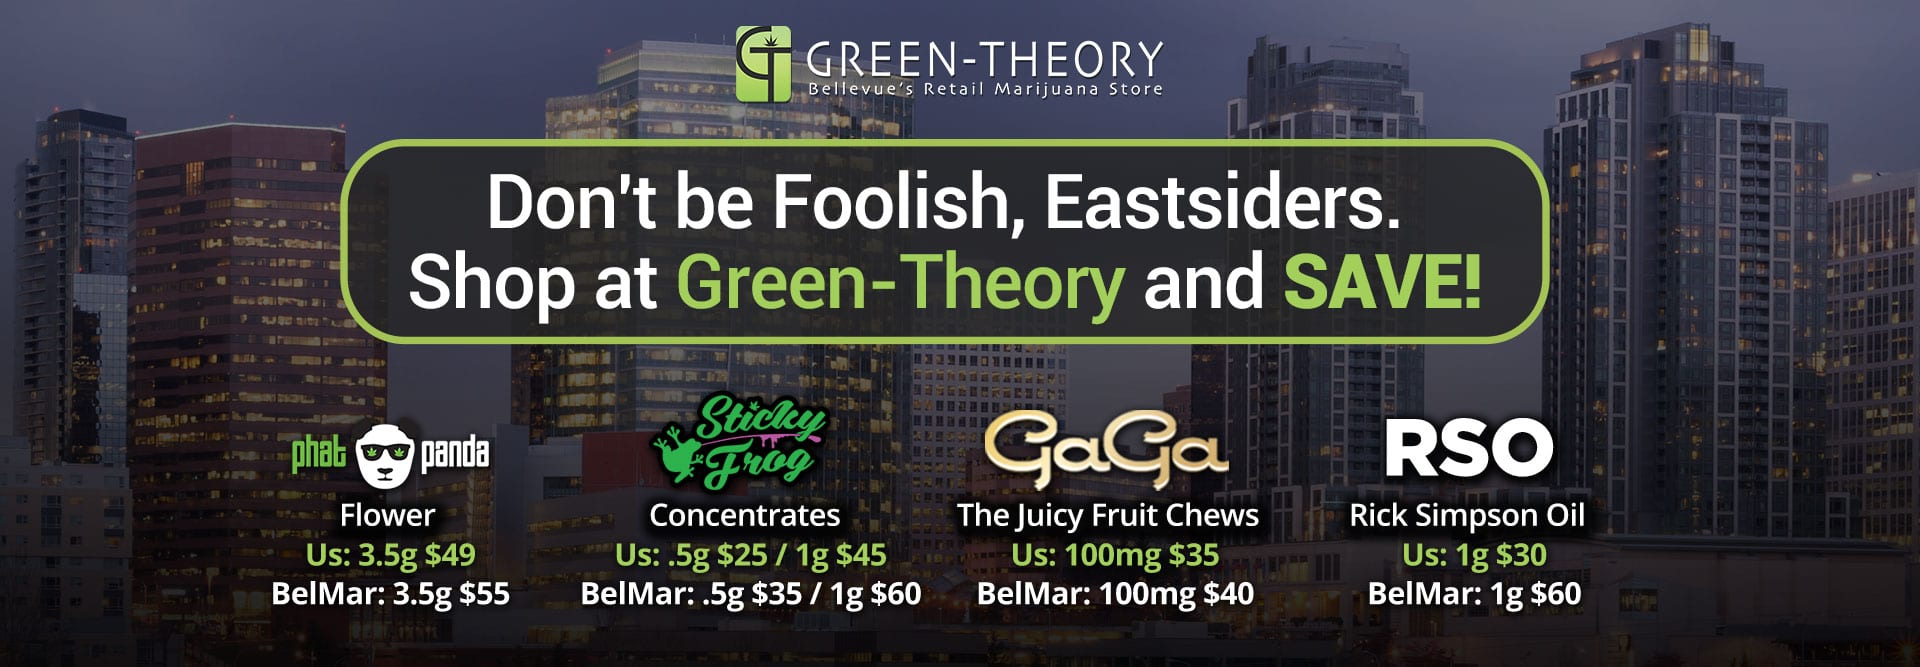 green-theory-best-prices-legal-weed-slide-1-1